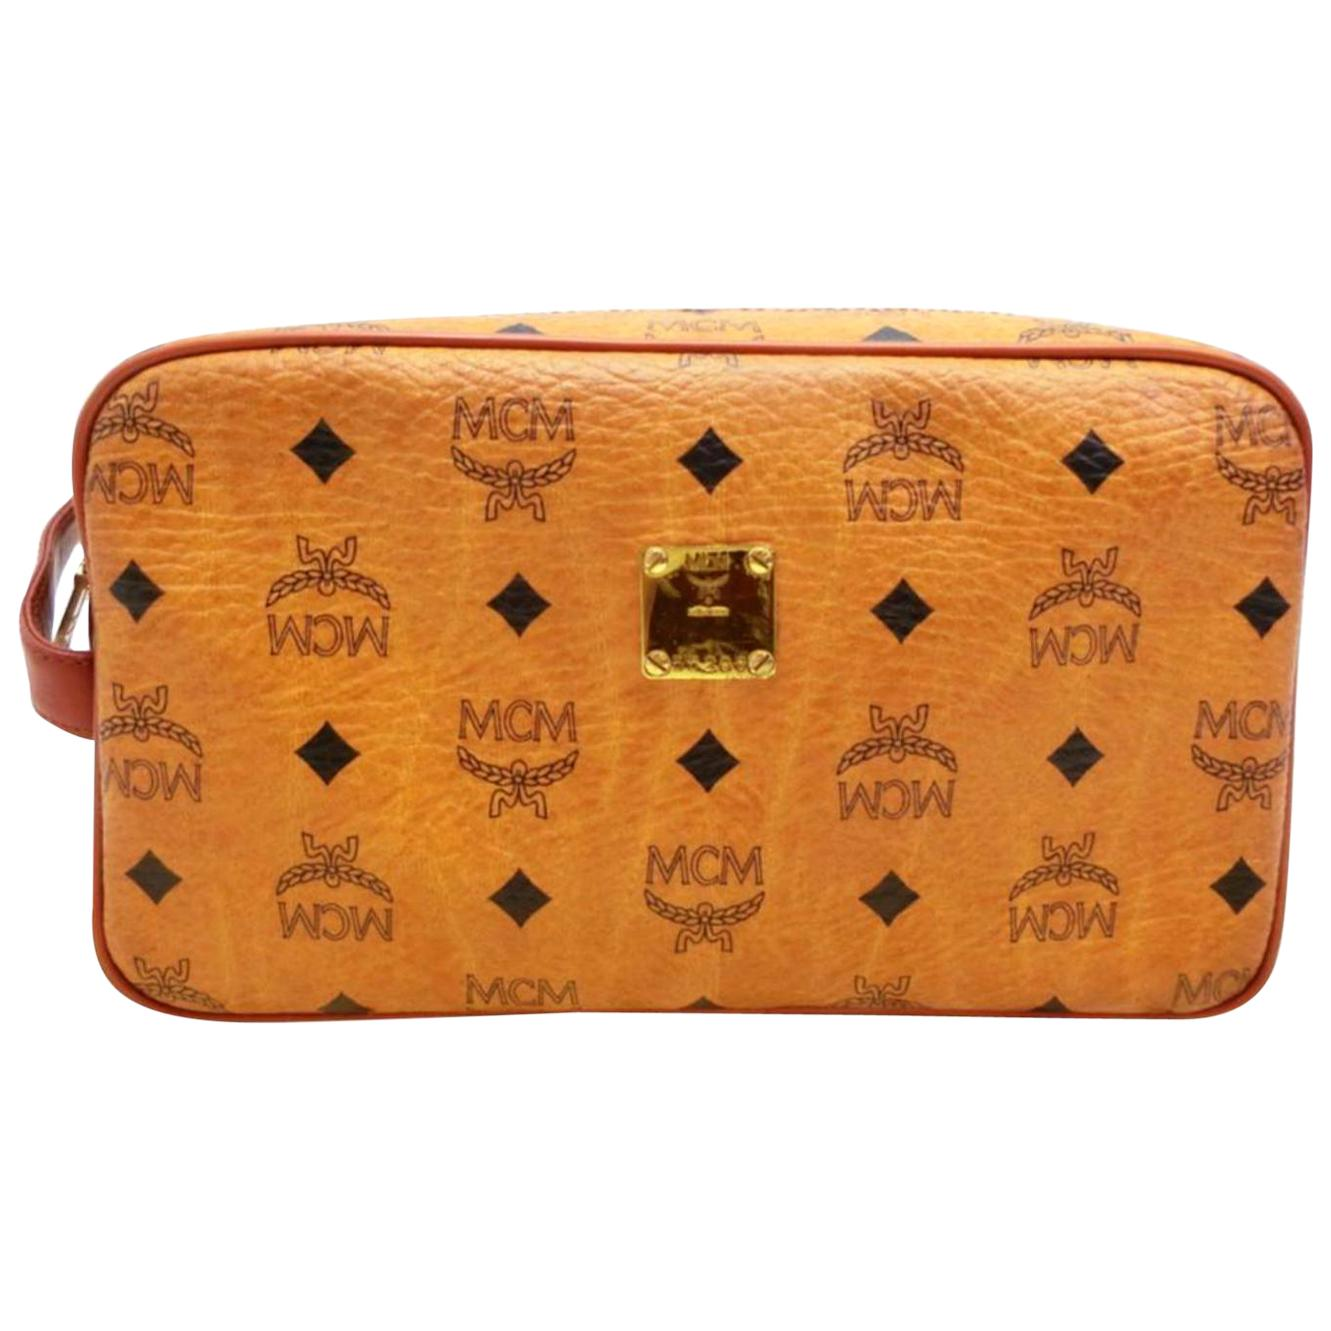 52c8f885937e The Bagriculture Wallets and Small Accessories - 1stdibs